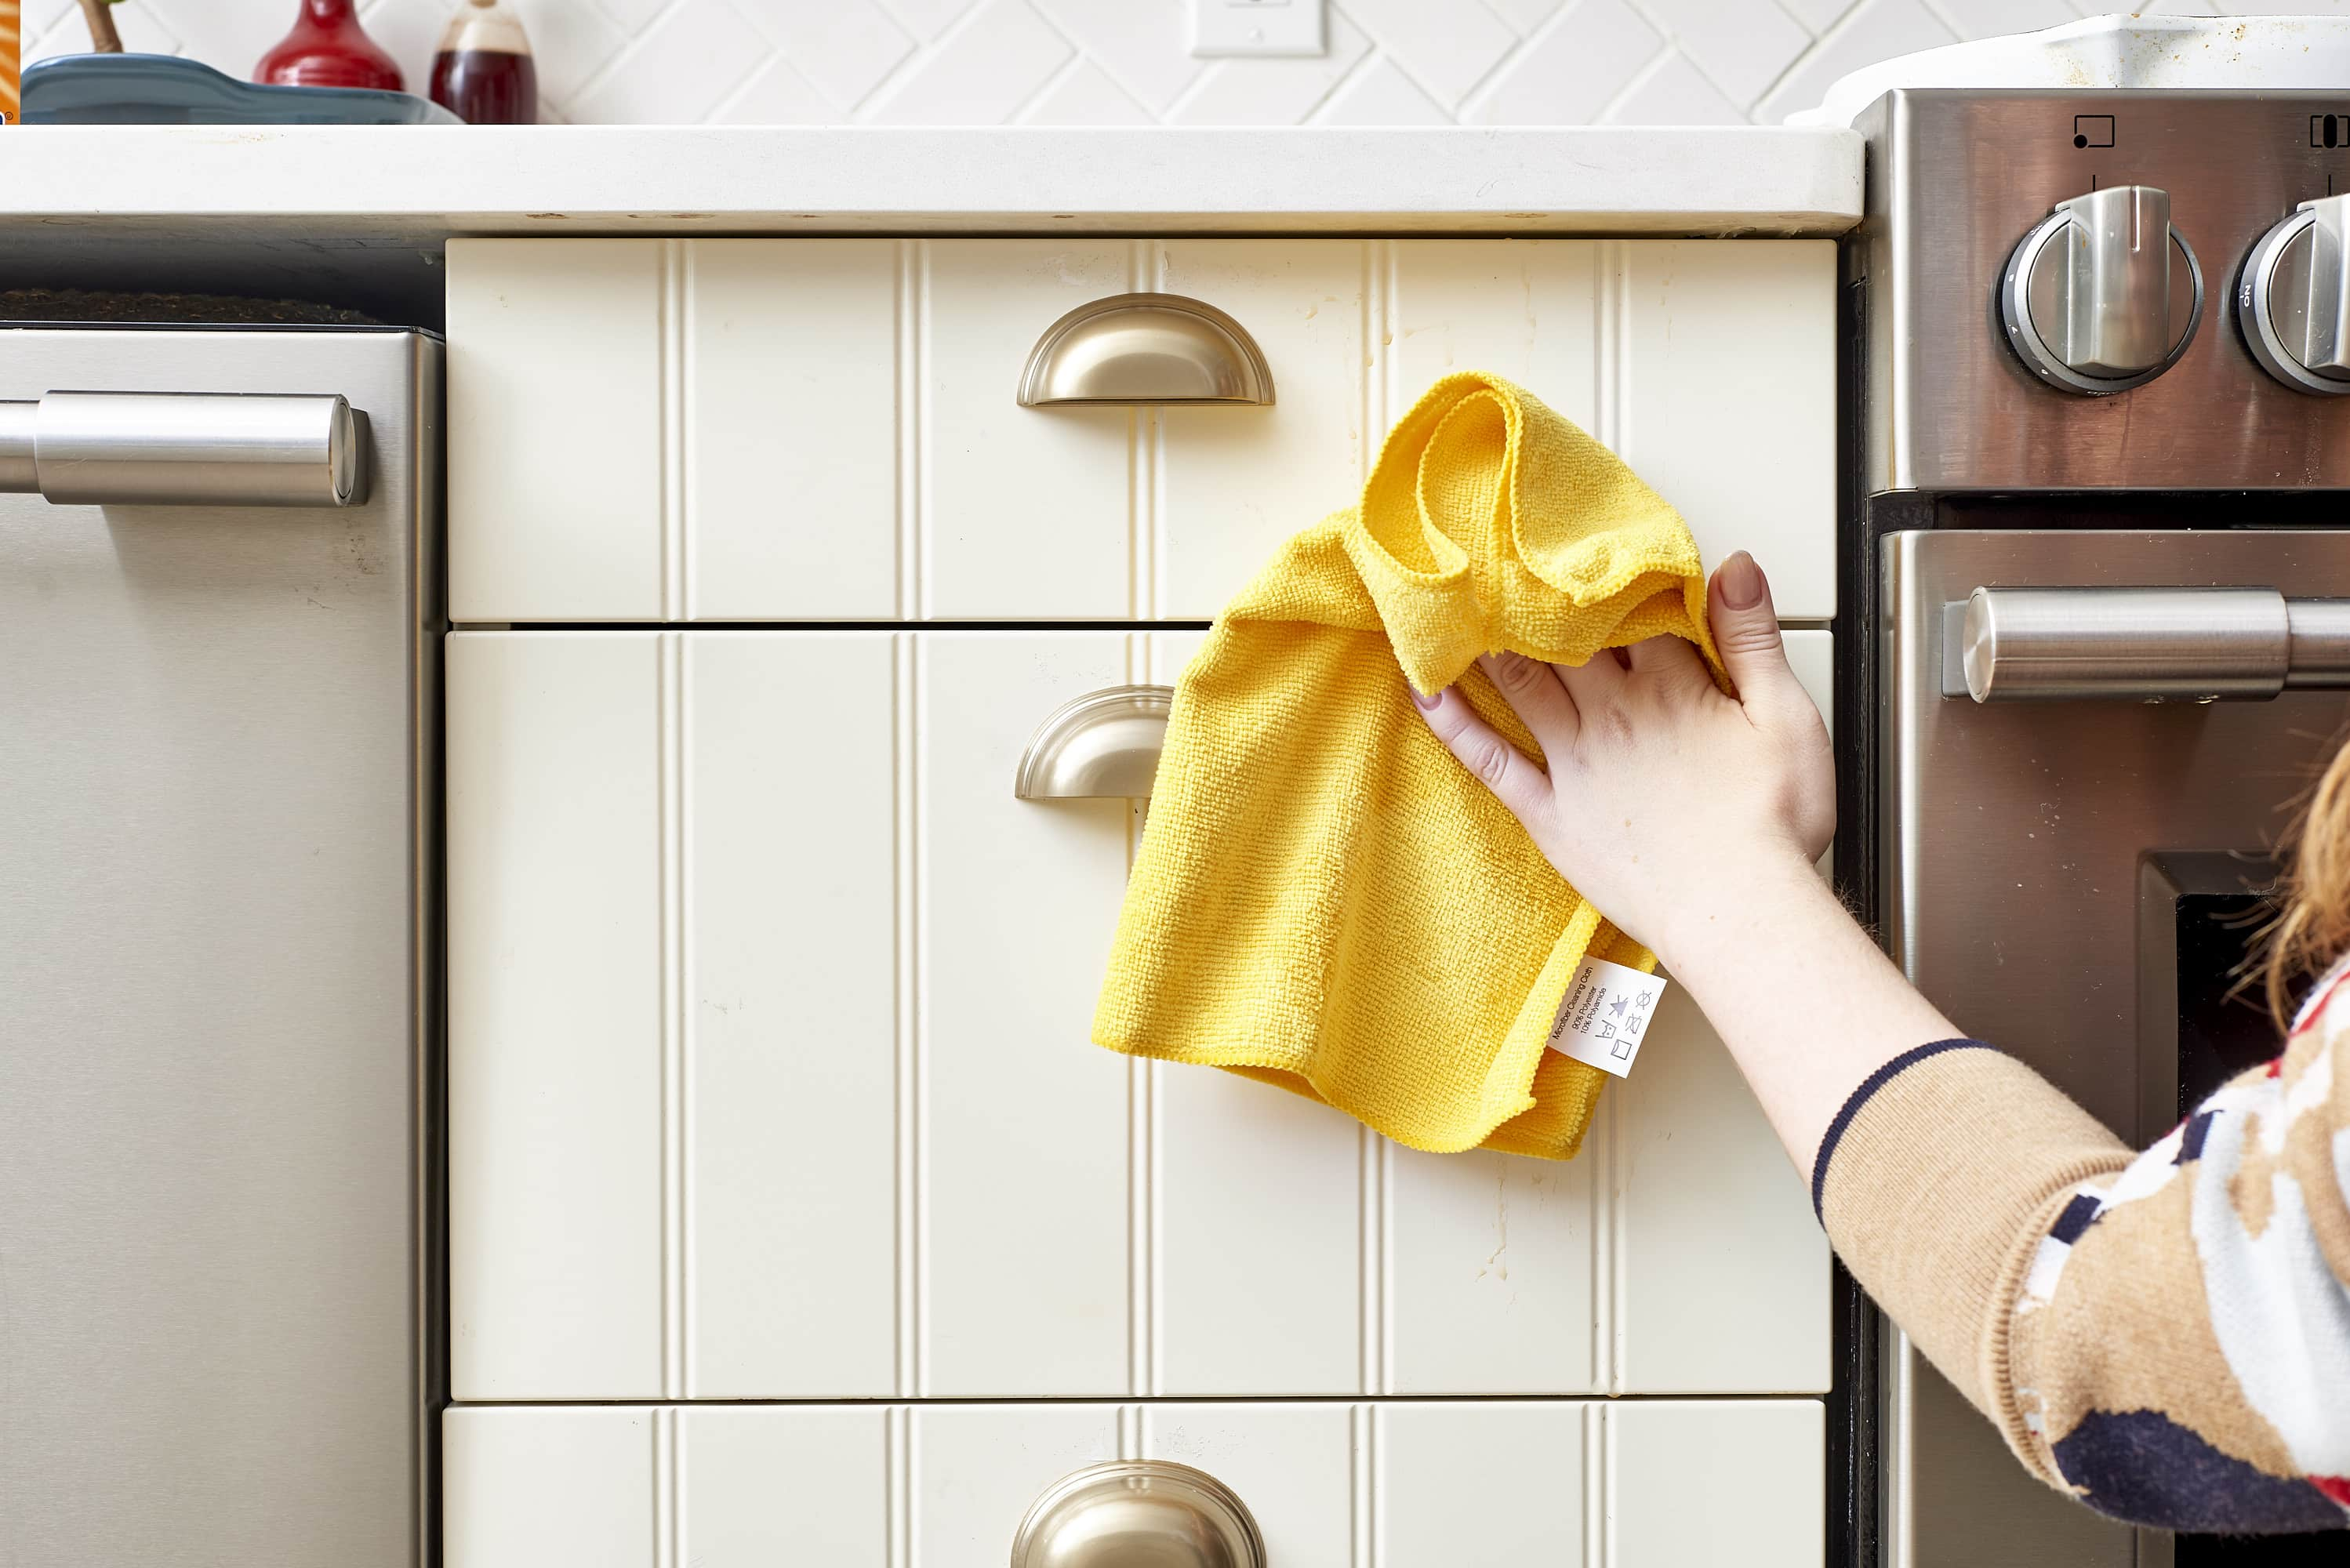 How To Get Sticky Cooking Grease Off Cabinet Doors | Kitchn